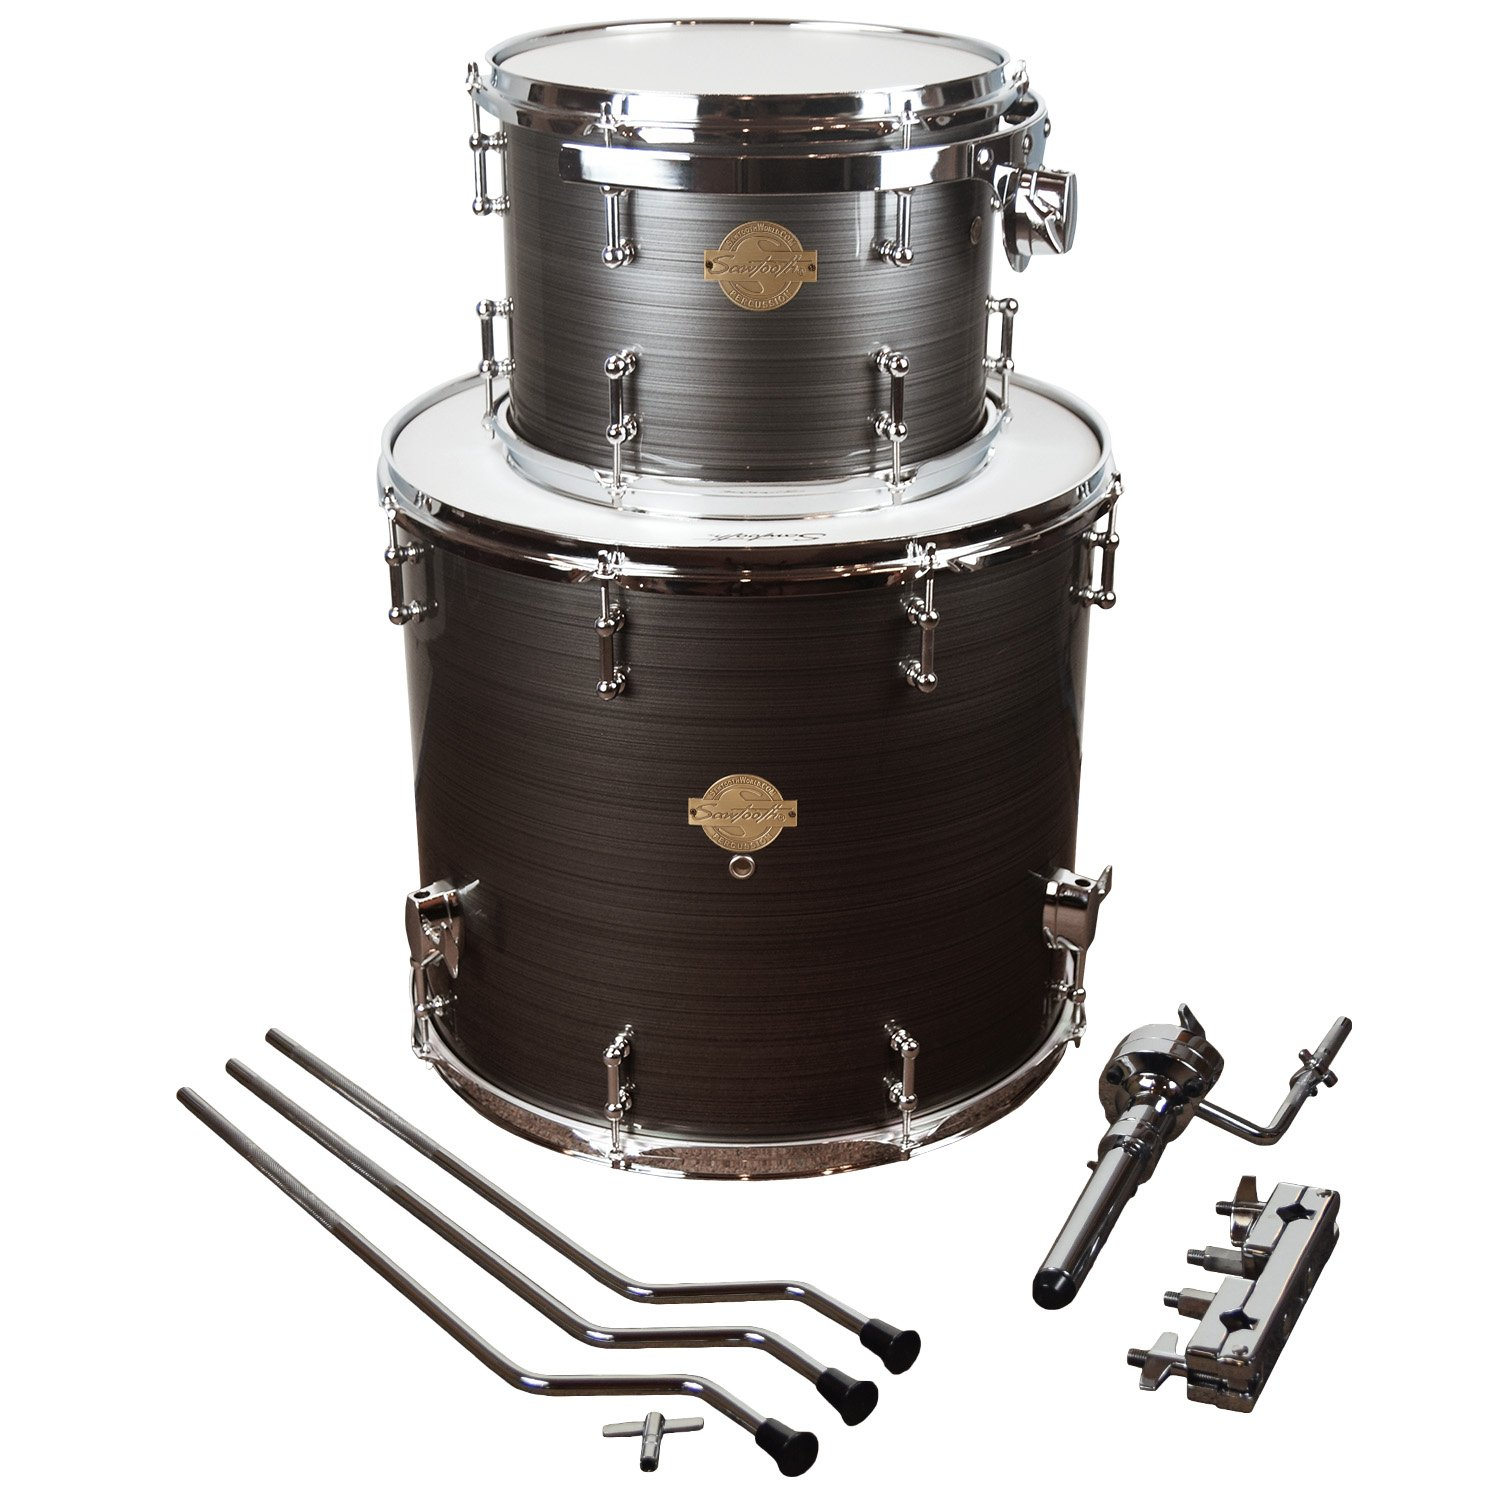 Sawtooth Command Series Extension Tom Pack - Includes: 8'' Tom & 14'' Floor Tom, Silver Streak